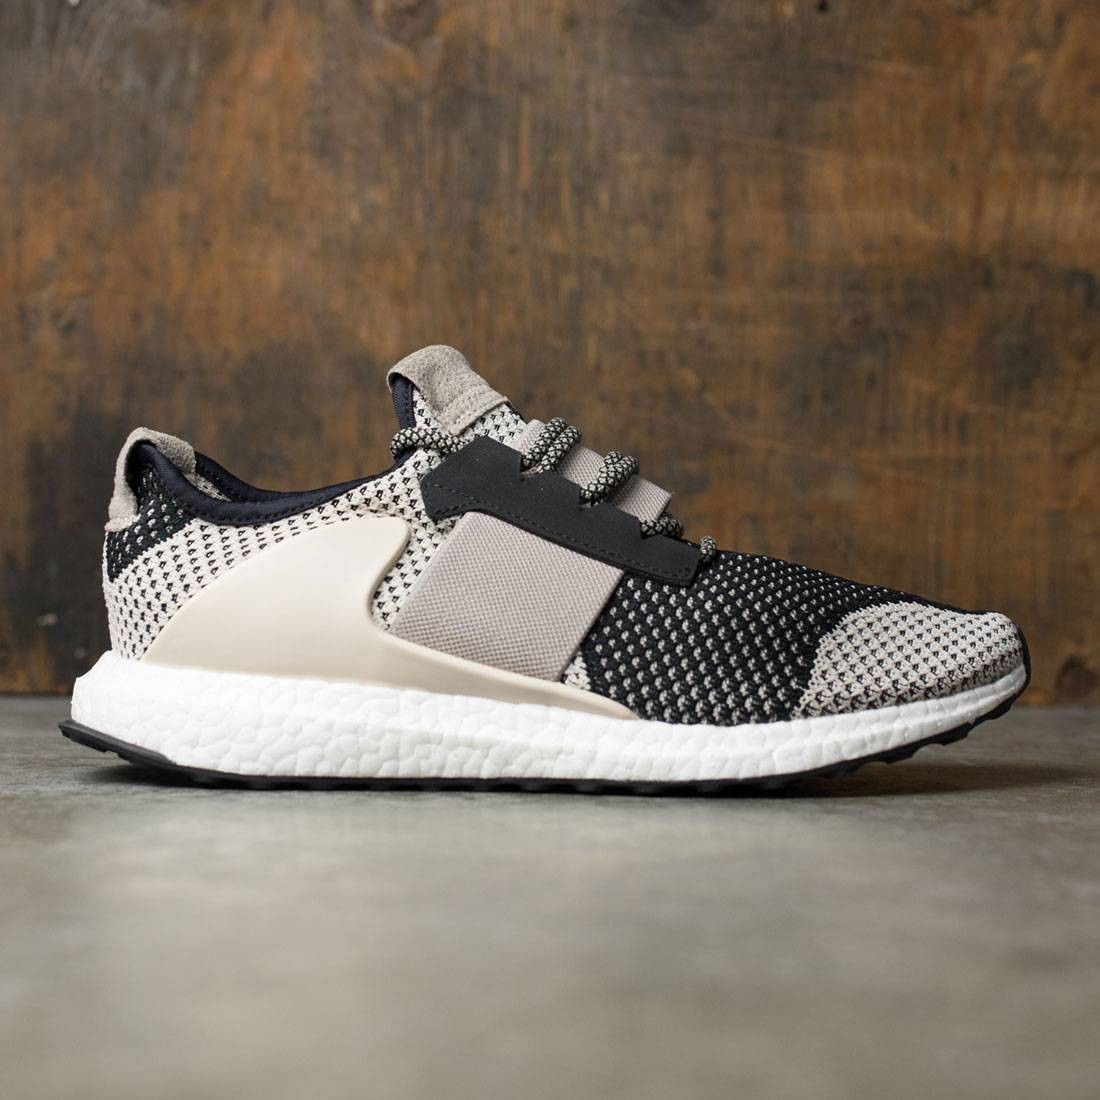 separation shoes 3d05e 3c1ba adidas consortium day one men ado ultraboost zg brown clear brown light  brown black